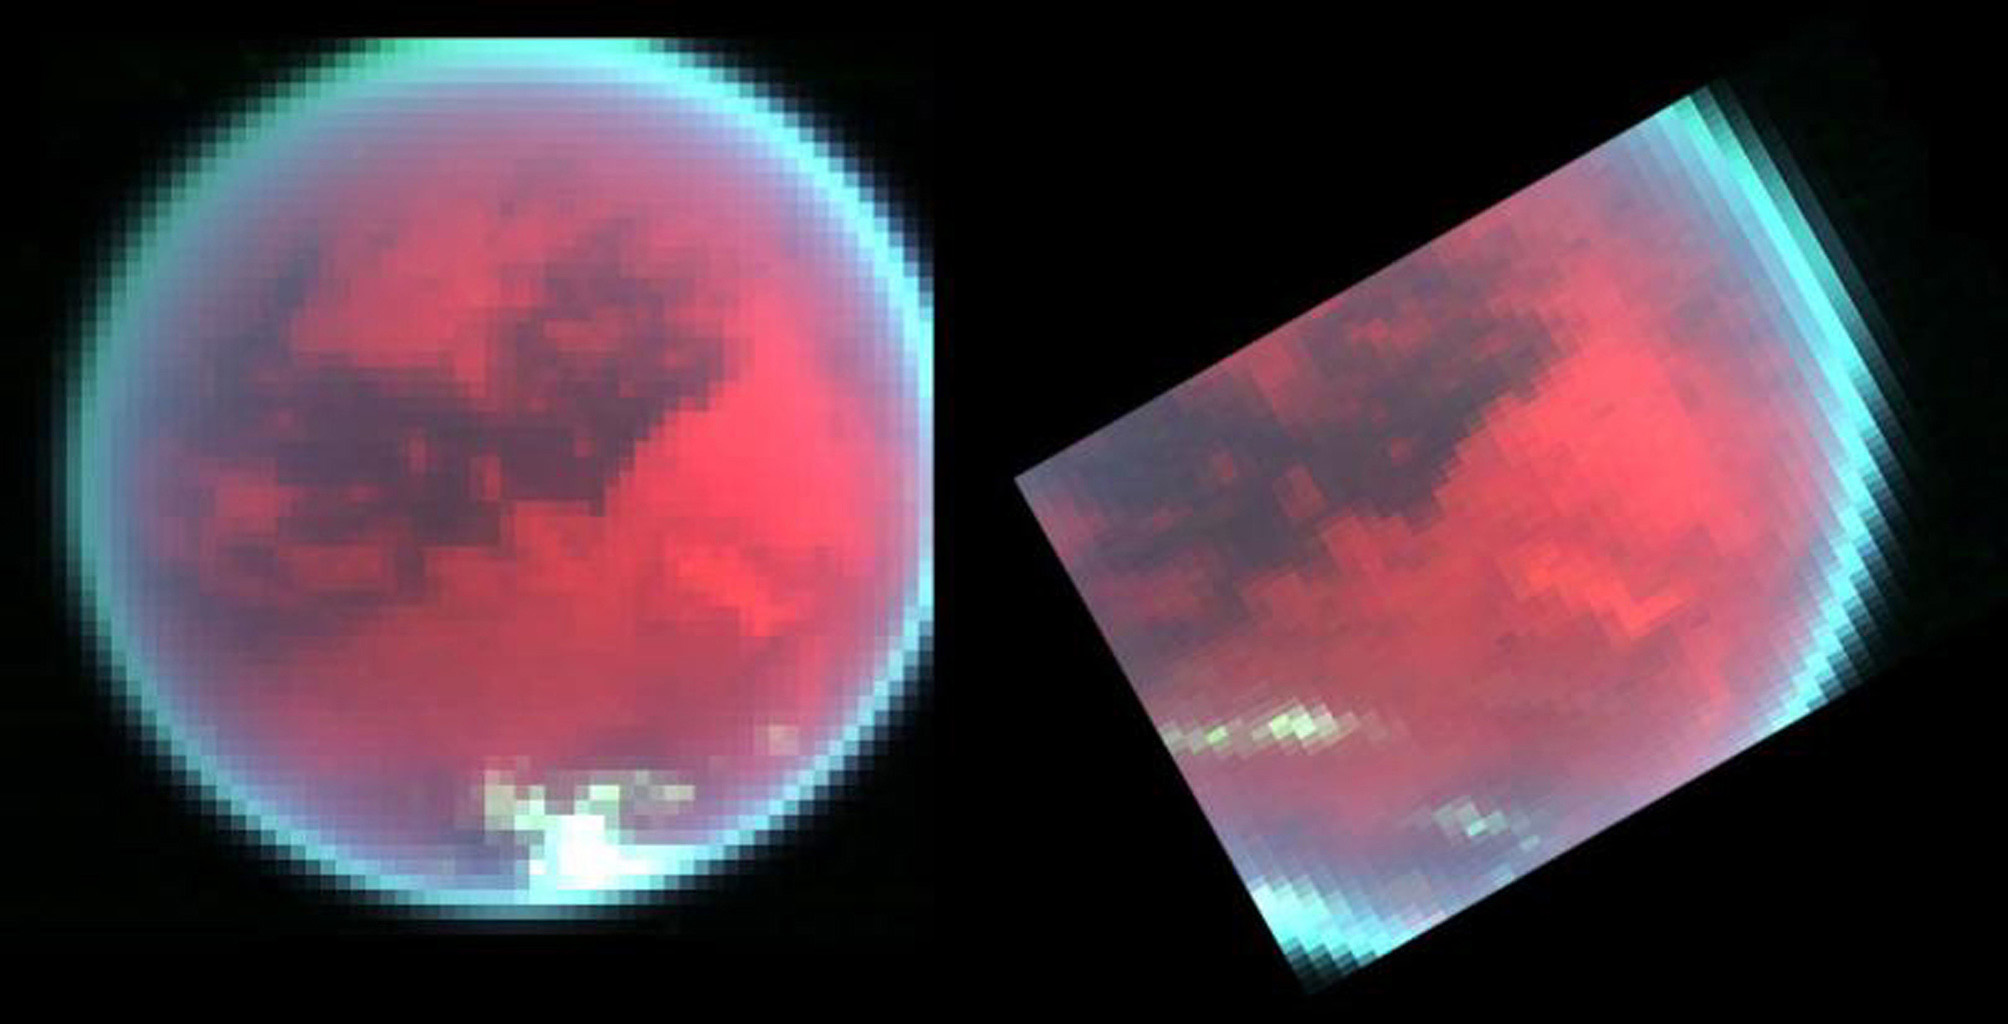 Evidence of changing weather patterns in the skies over Titan's southern region are revealed in these false color images obtained by NASA's Cassini spacecraft's visual infrared mapping spectrometer.